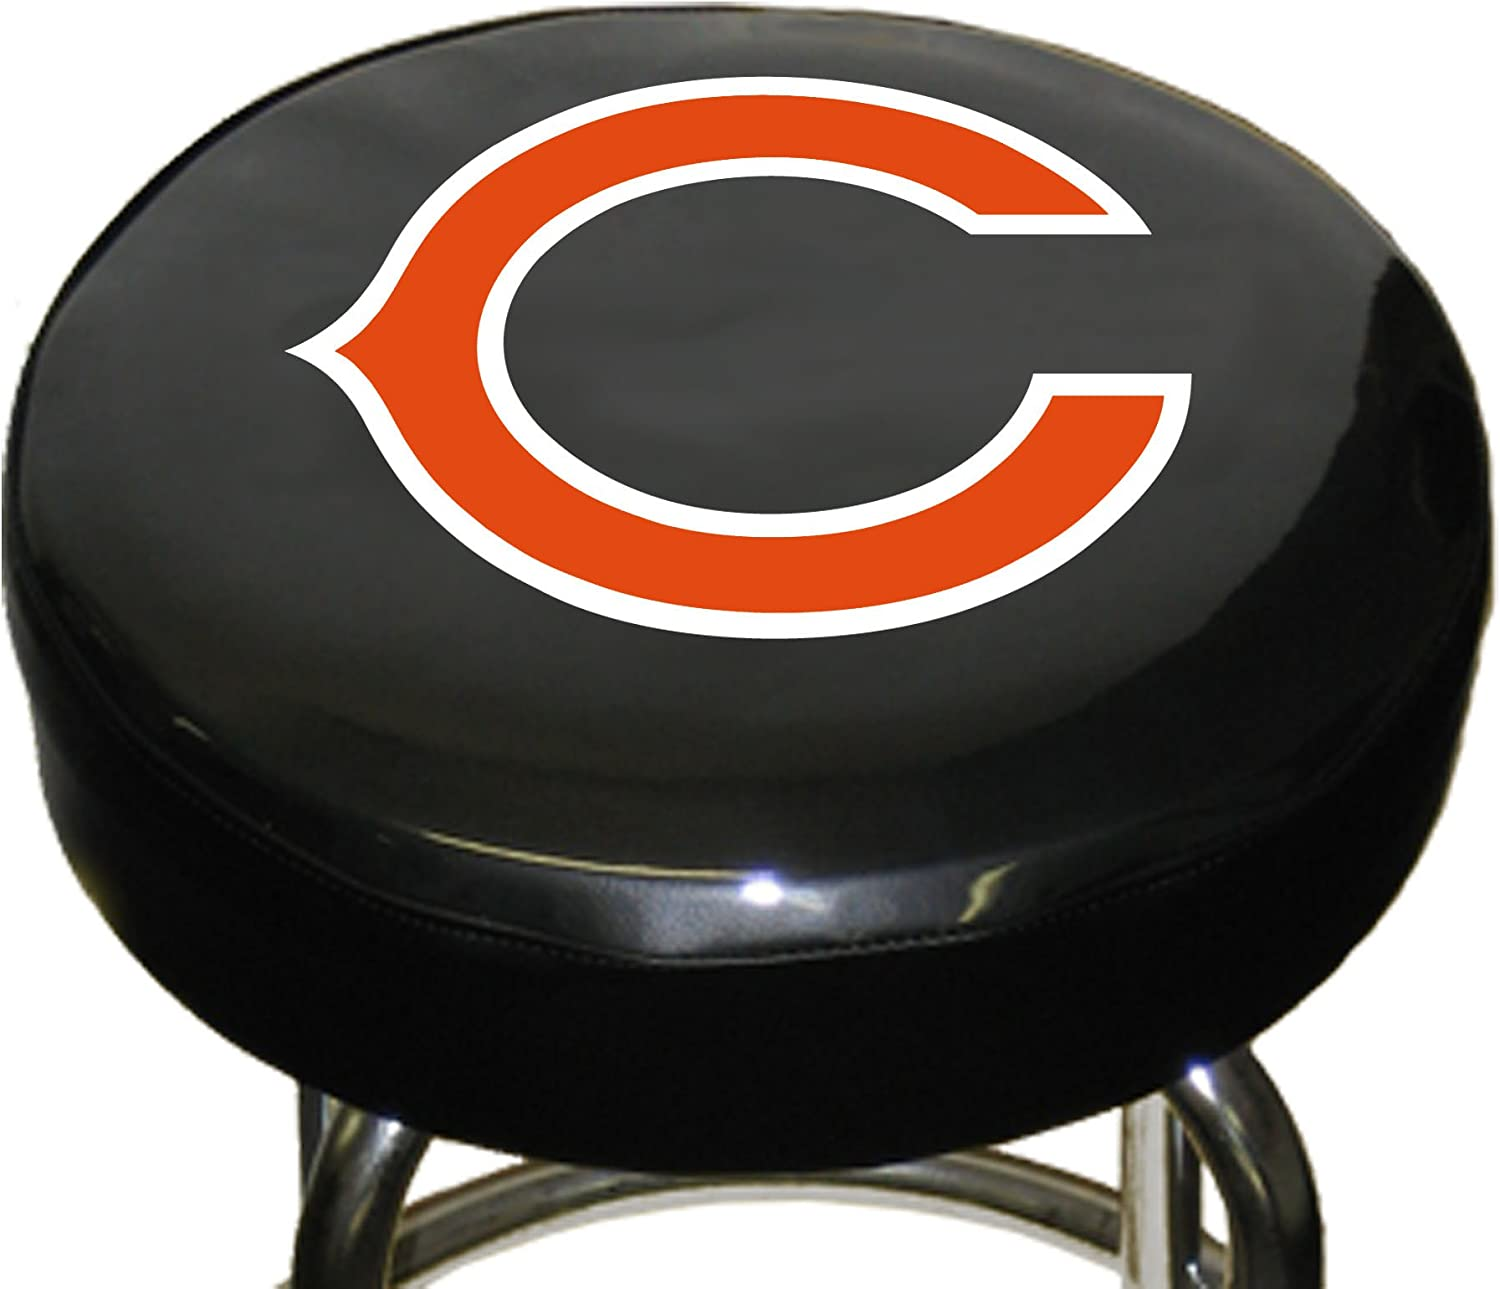 Fremont Die Nfl Chicago Bears Bar Stool Cover 14 5 Diameter 14 5 Diameter 3 5 Thickness Black Team Colors Sports Fan Barstools Sports Outdoors Amazon Com